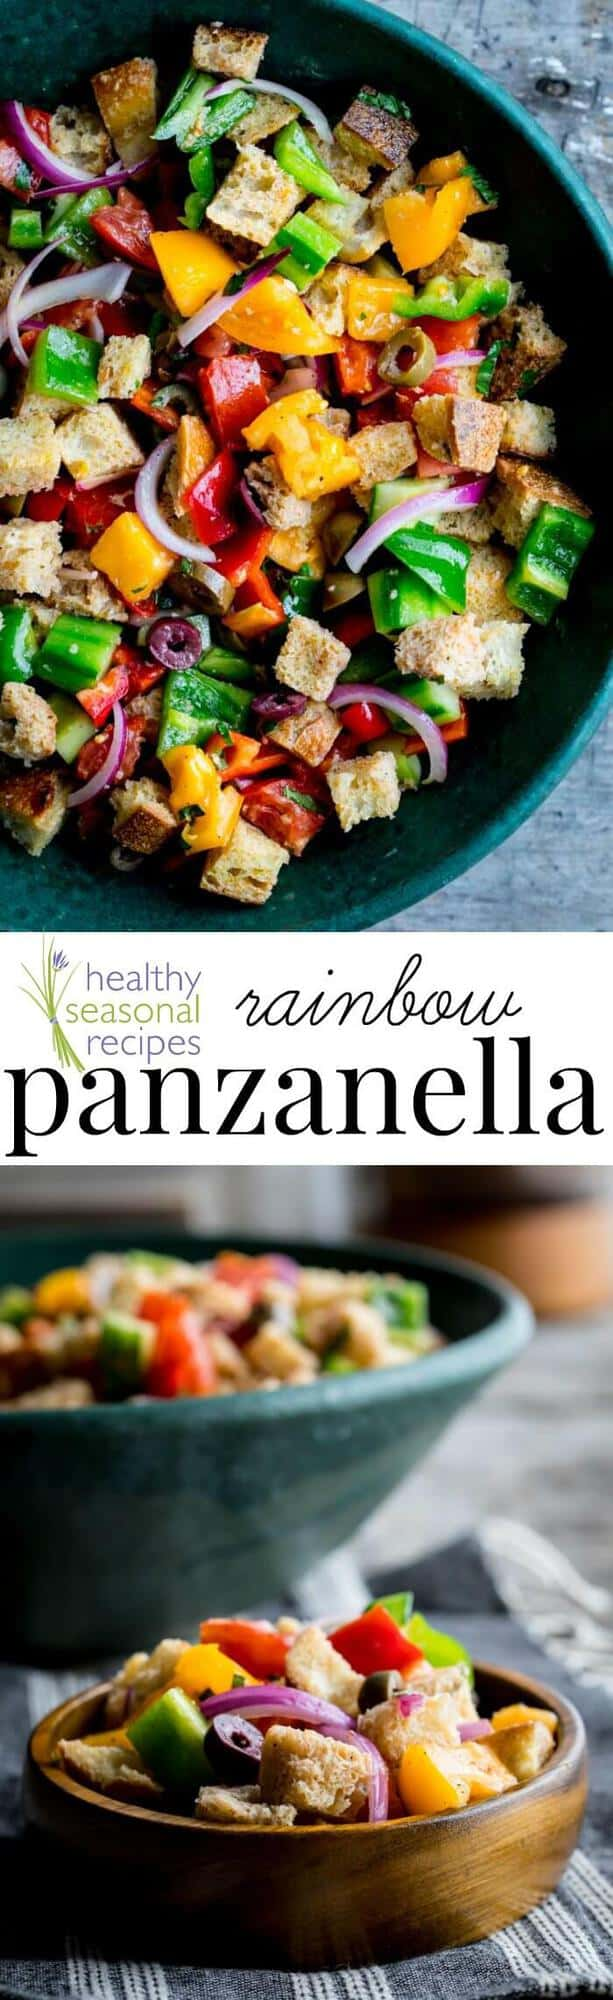 This rainbow panzanella has several fresh, colorful vegetables tossed in. It has a crust and softness that gets better as it sits. Perfect for summer potlucks and events!Healthy Seasonal Recipes by Katie Webster | #summer #vegetables #fresh #potluck #color #rainbow